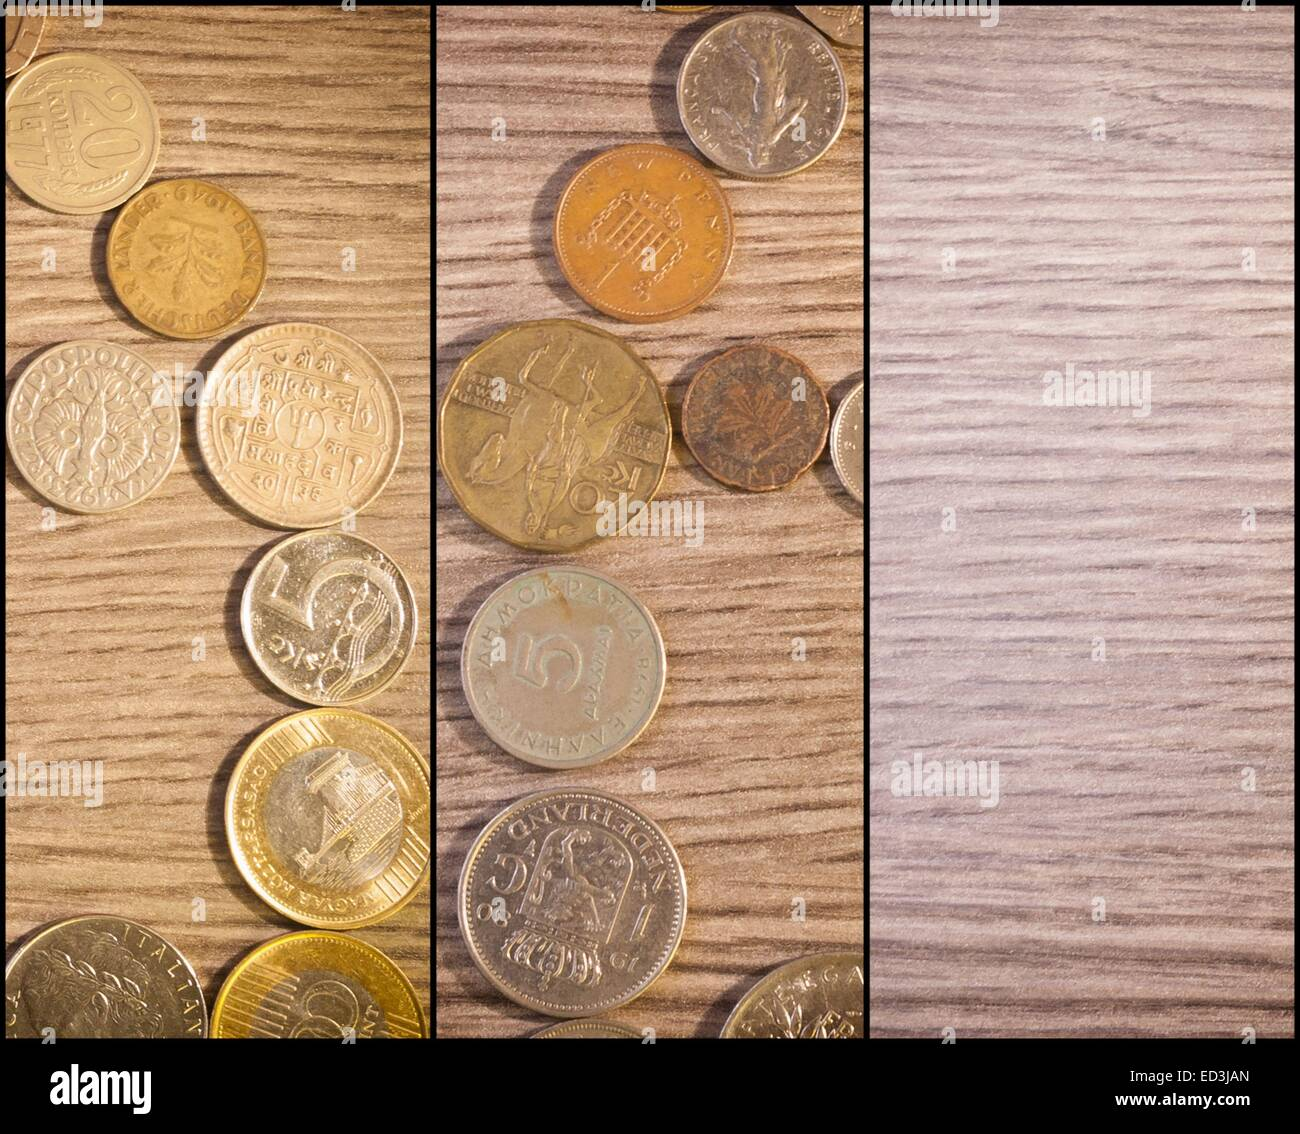 Home Of Coins. Lire Marks Pounds Drachmas - Stock Image